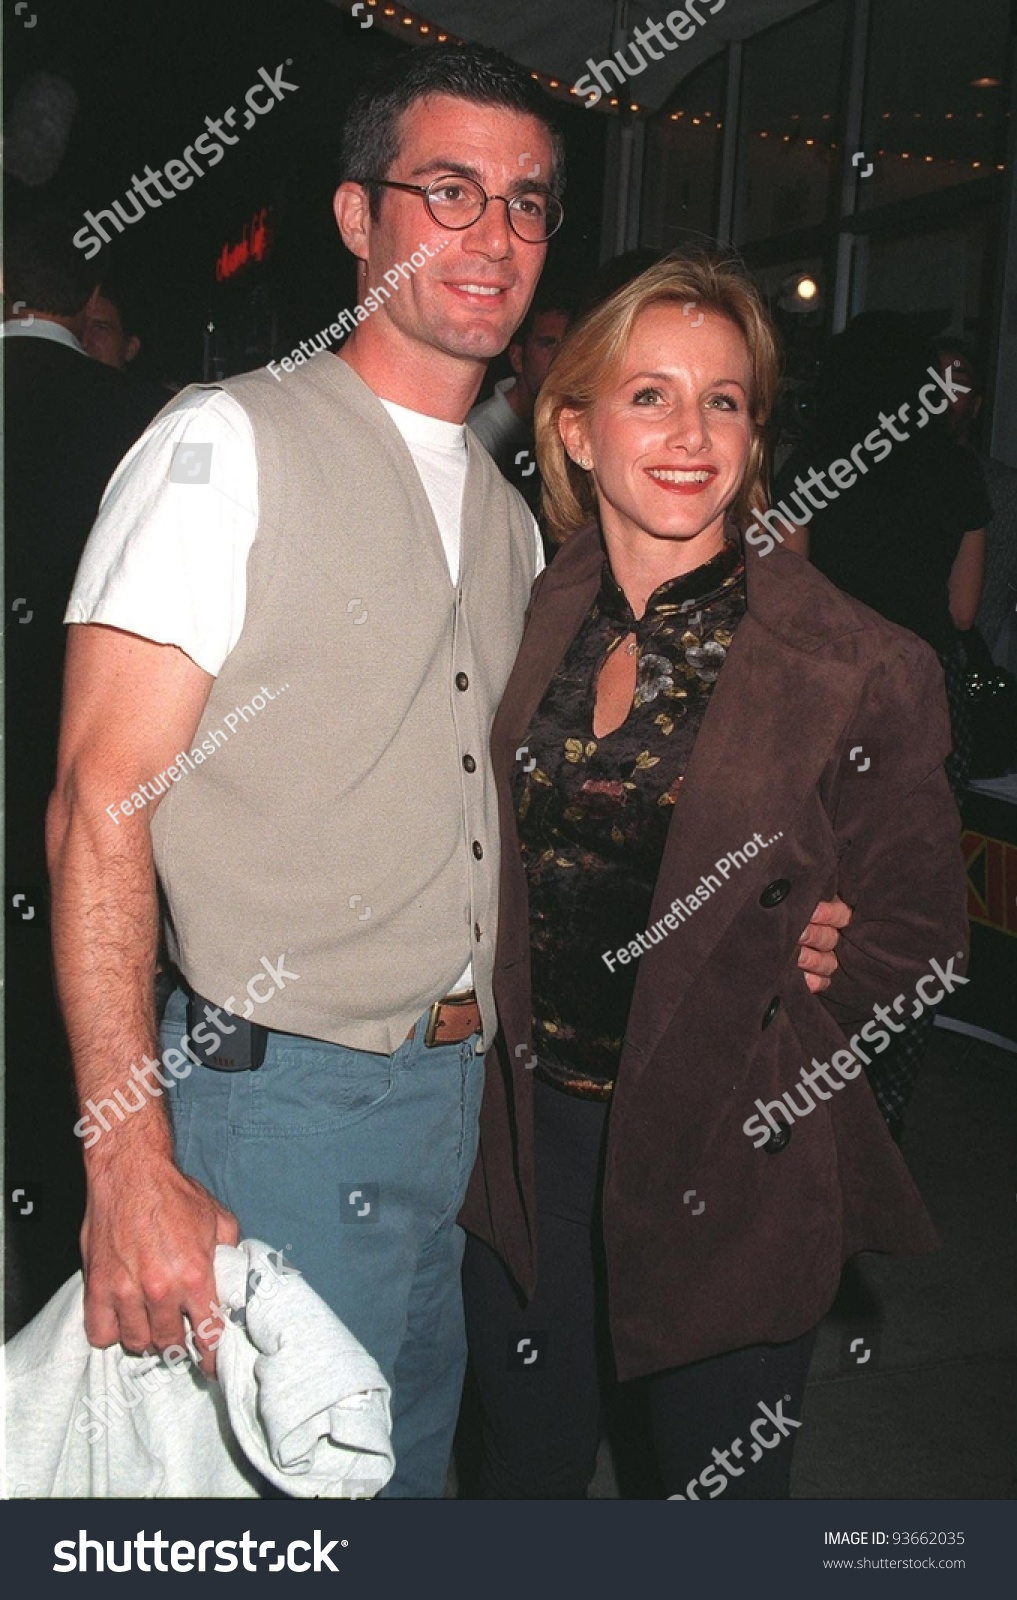 29sep97 former beverly hills 90210 star gabrielle carteris husband at the premiere of